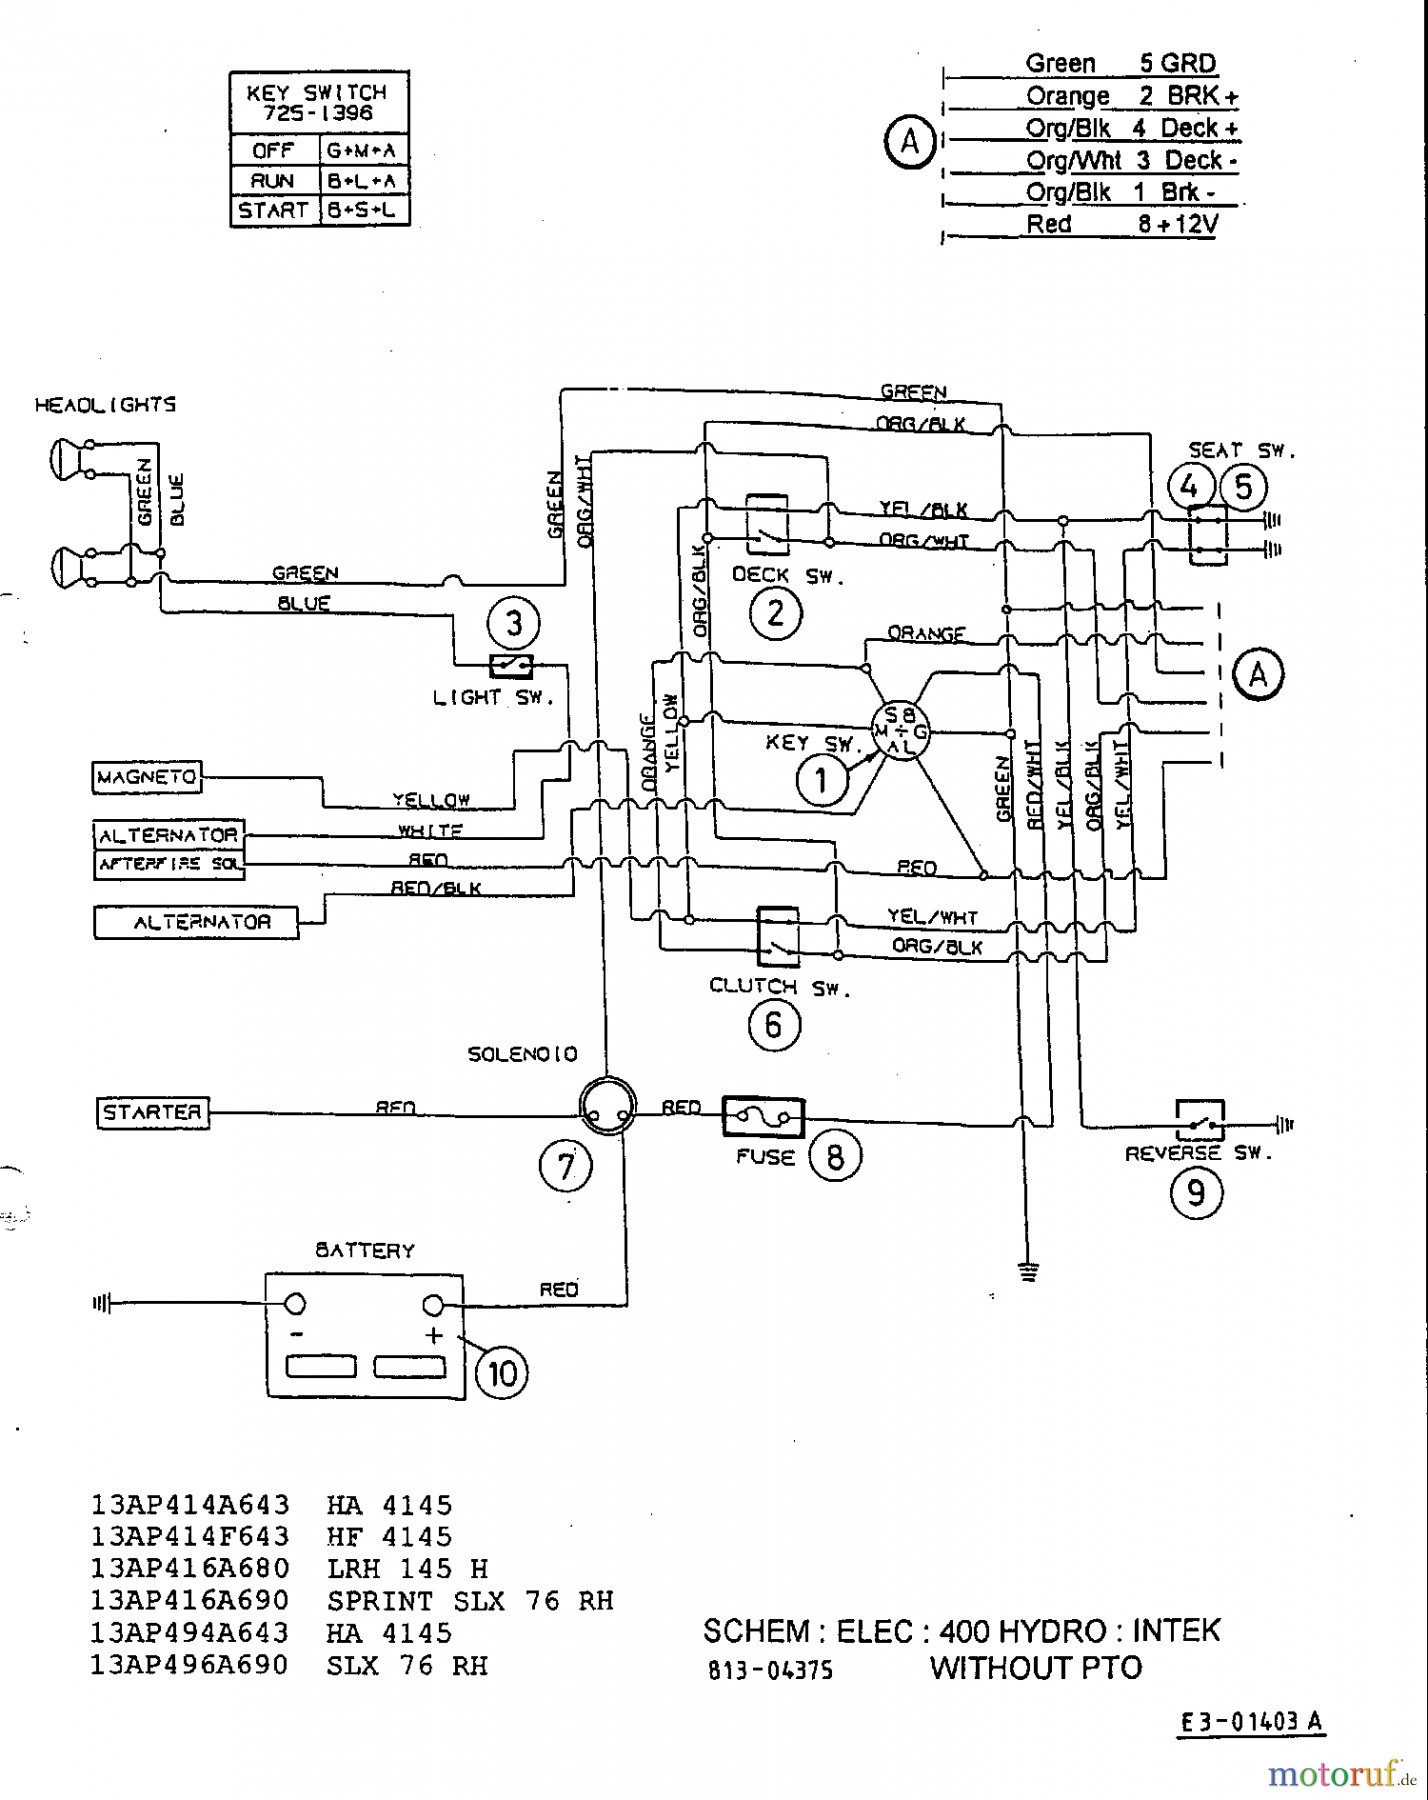 Mtd Riding Lawn Mower Wiring Diagram | Free Wiring Diagram